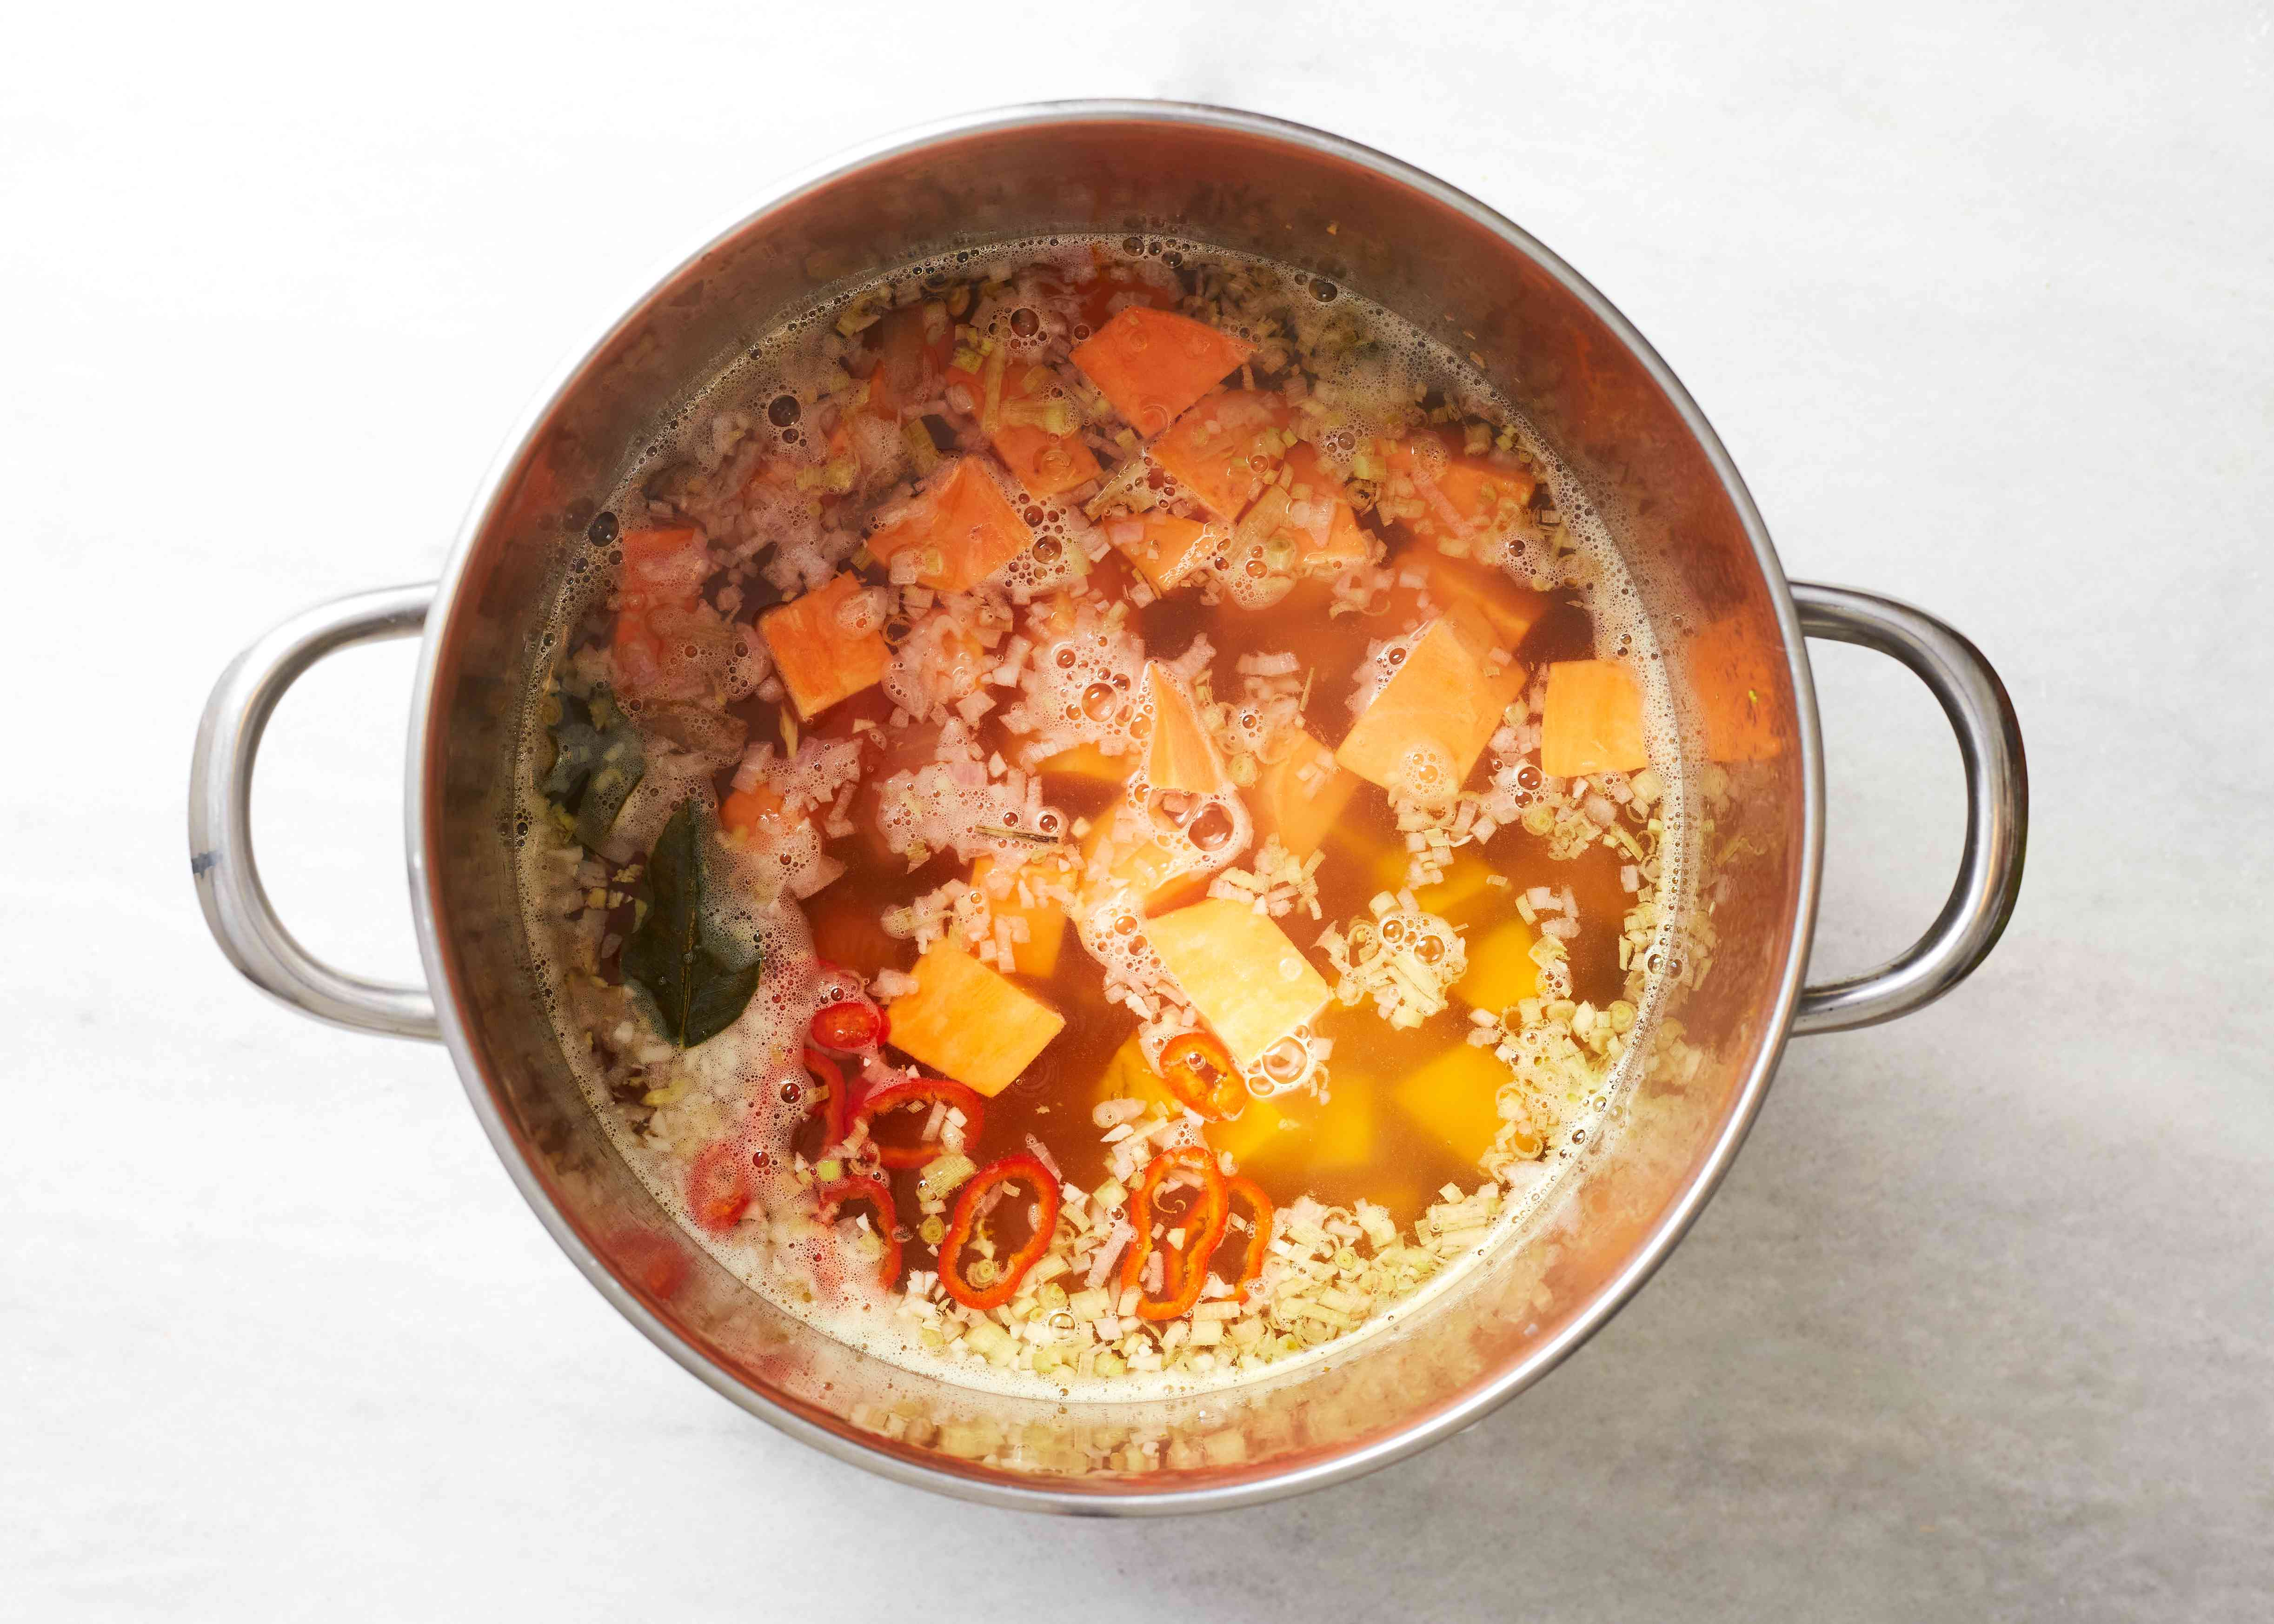 Add the pumpkin and yam to the soup in the pot